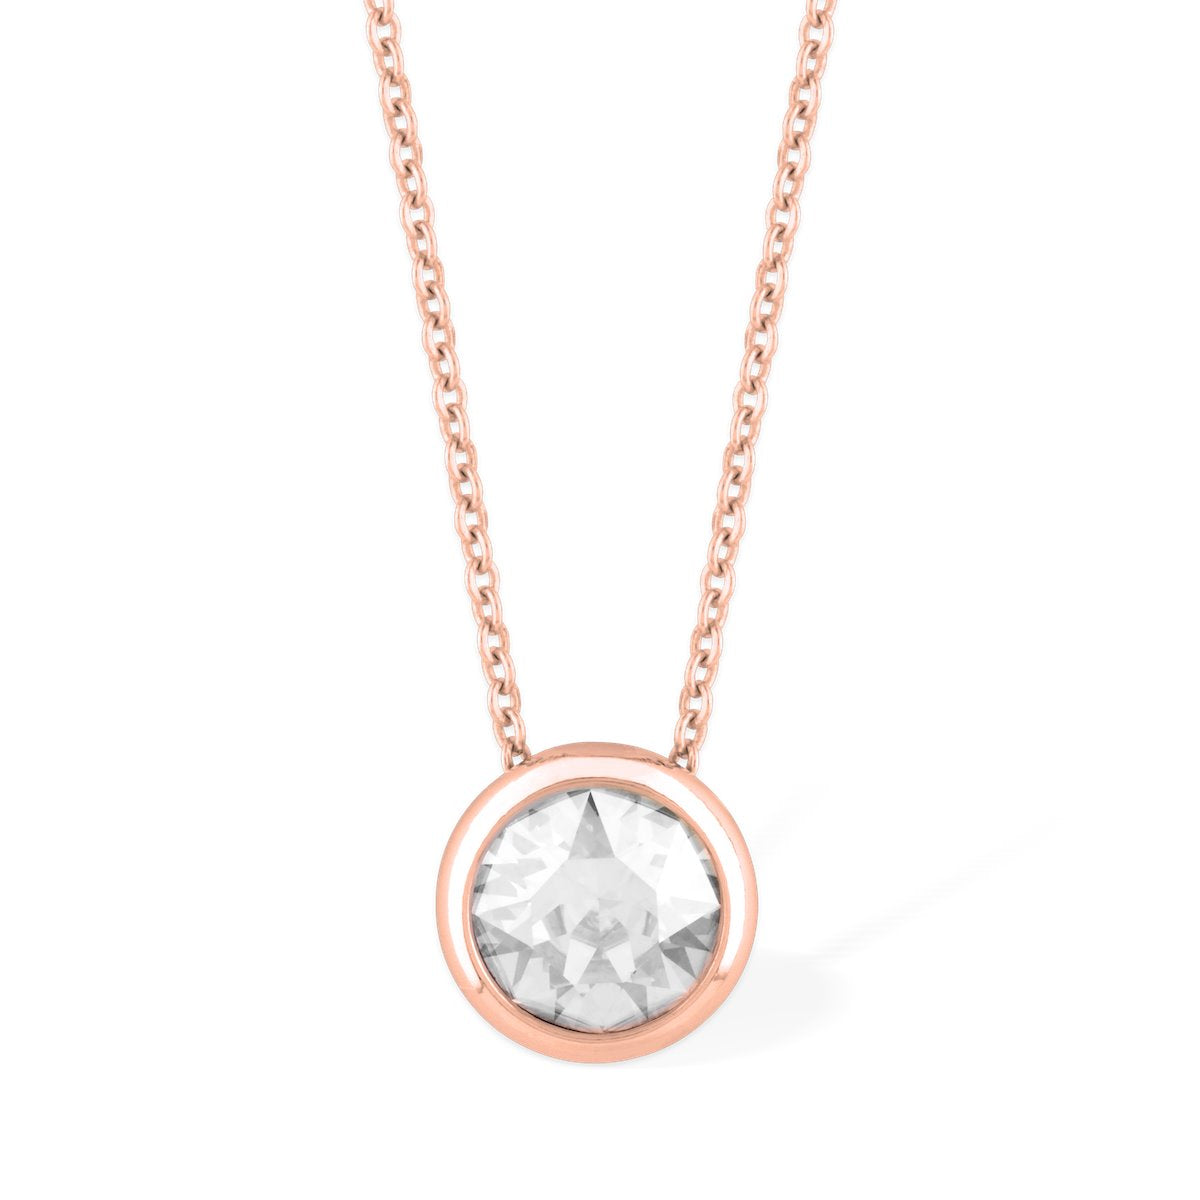 Grace Necklace forevercrystals Rose Gold